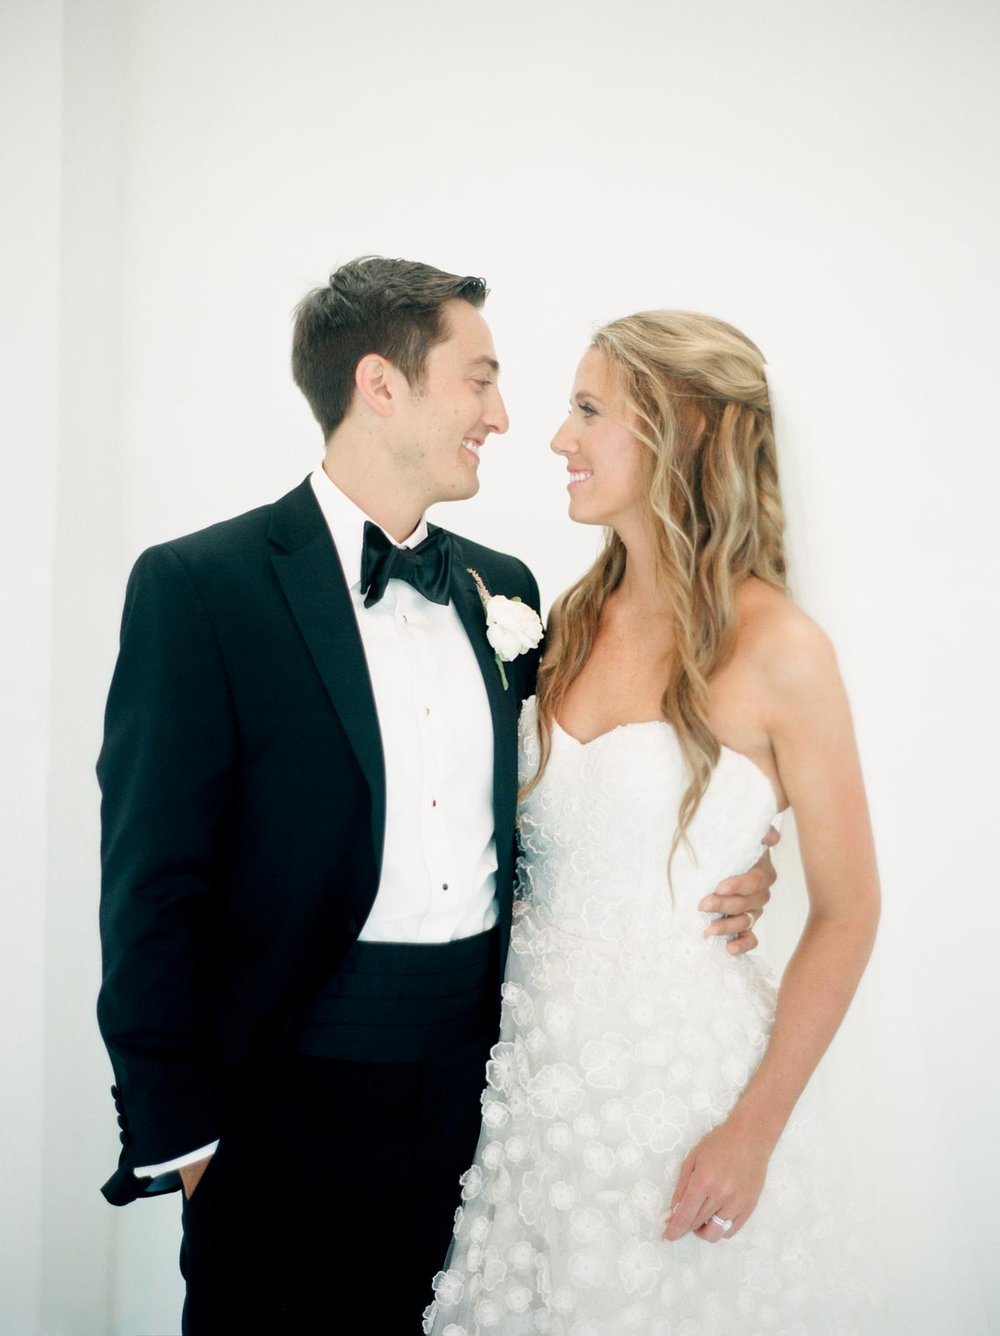 kateweinsteinphoto_milwaukee_art_museum_wedding-147.jpg